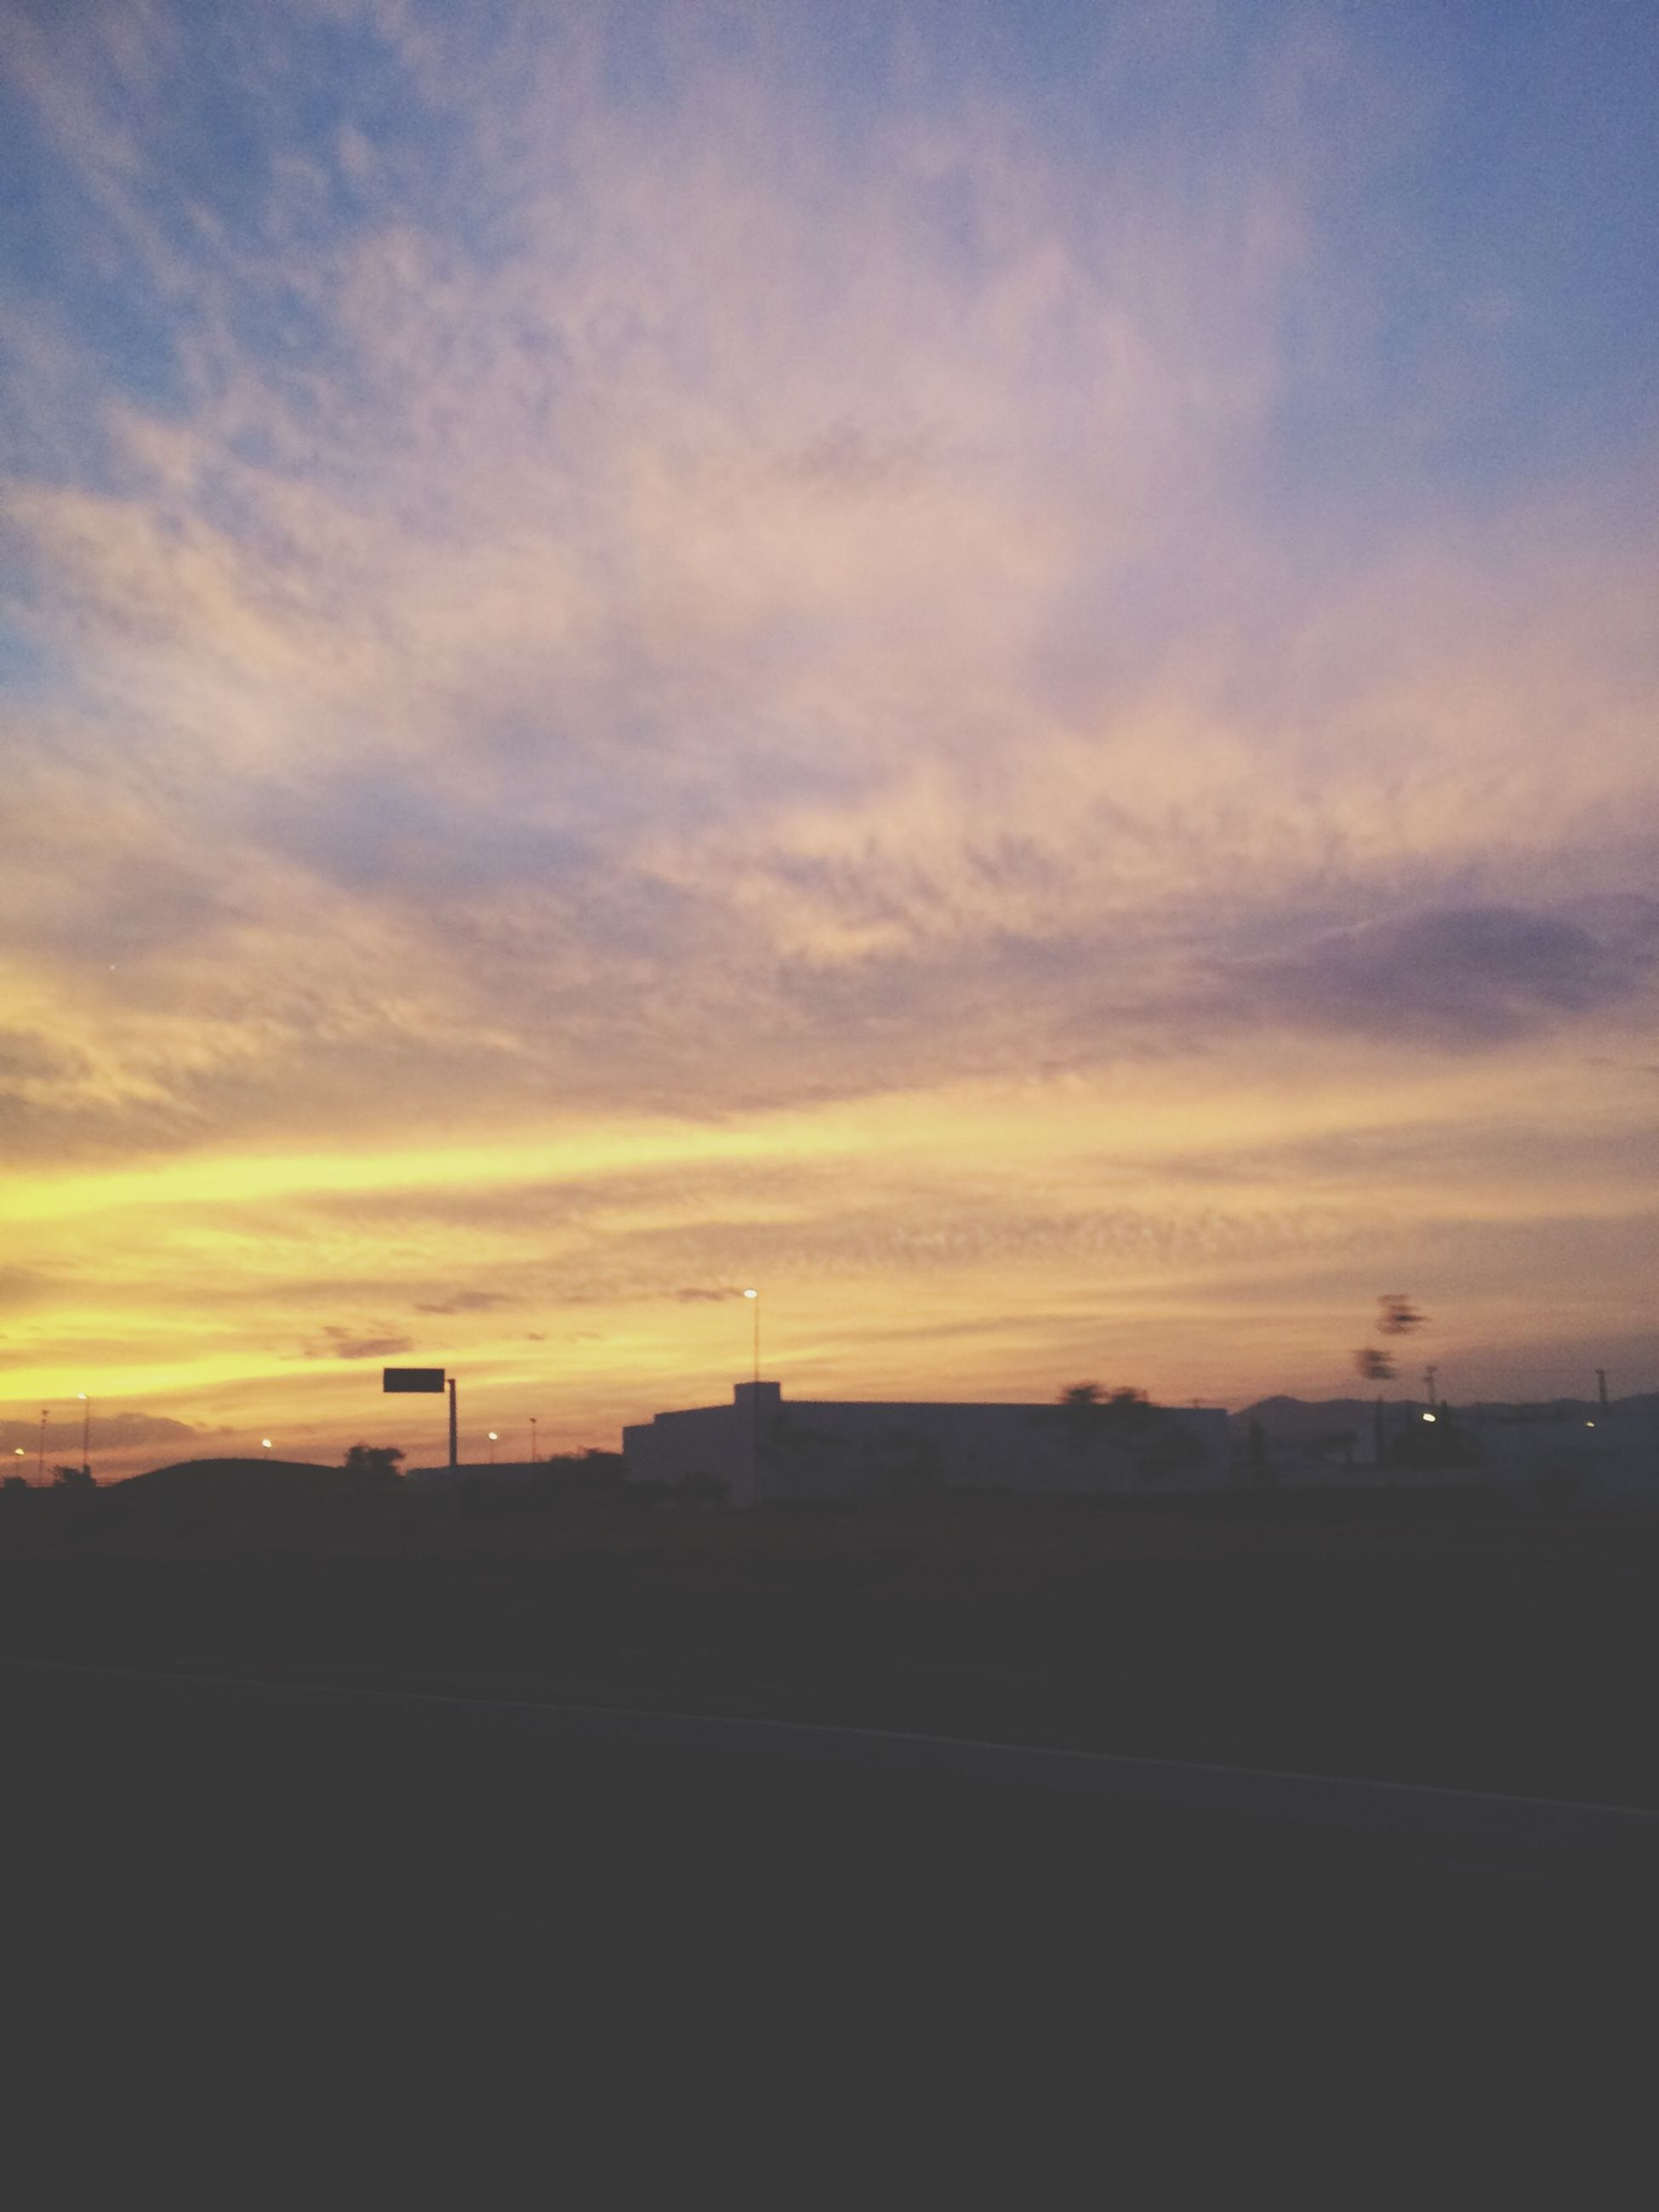 sunset, sky, silhouette, orange color, building exterior, cloud - sky, architecture, built structure, scenics, beauty in nature, nature, cloud, tranquility, dusk, cloudy, tranquil scene, outdoors, dramatic sky, no people, idyllic